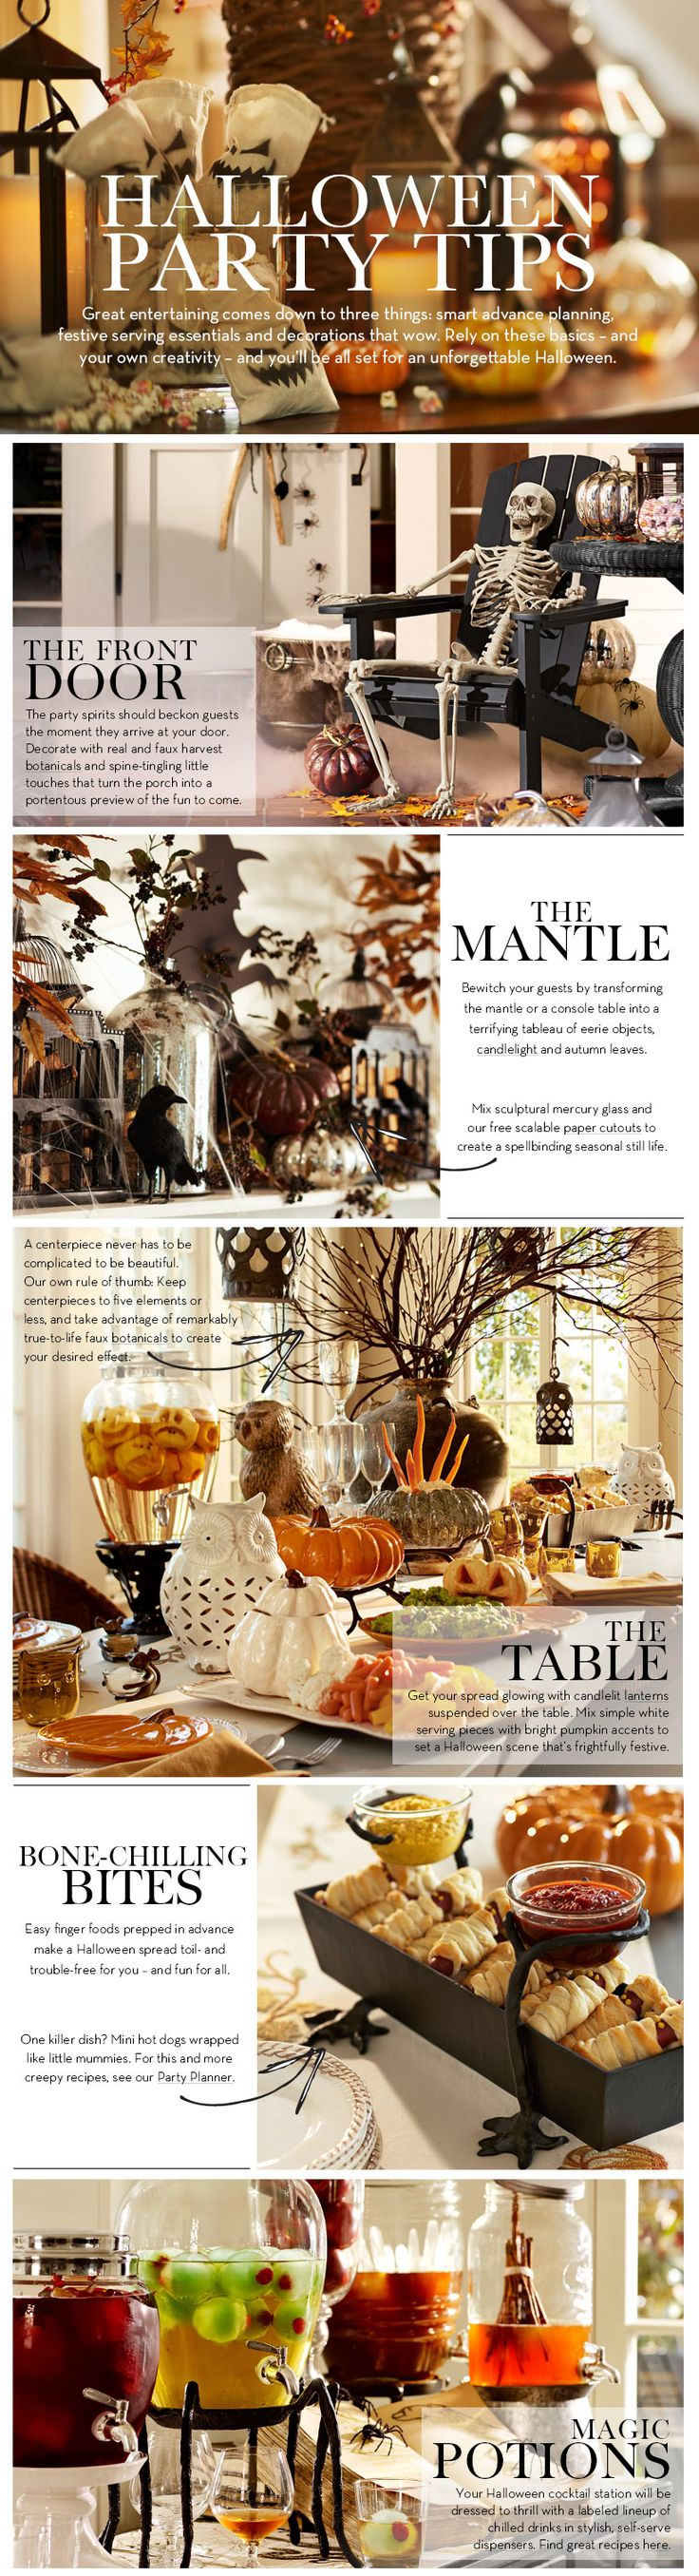 Brown velvet material of the table top gives a stylish and classy - Halloween Party Tips From Pottery Barn Mostly Stuff To Purchase